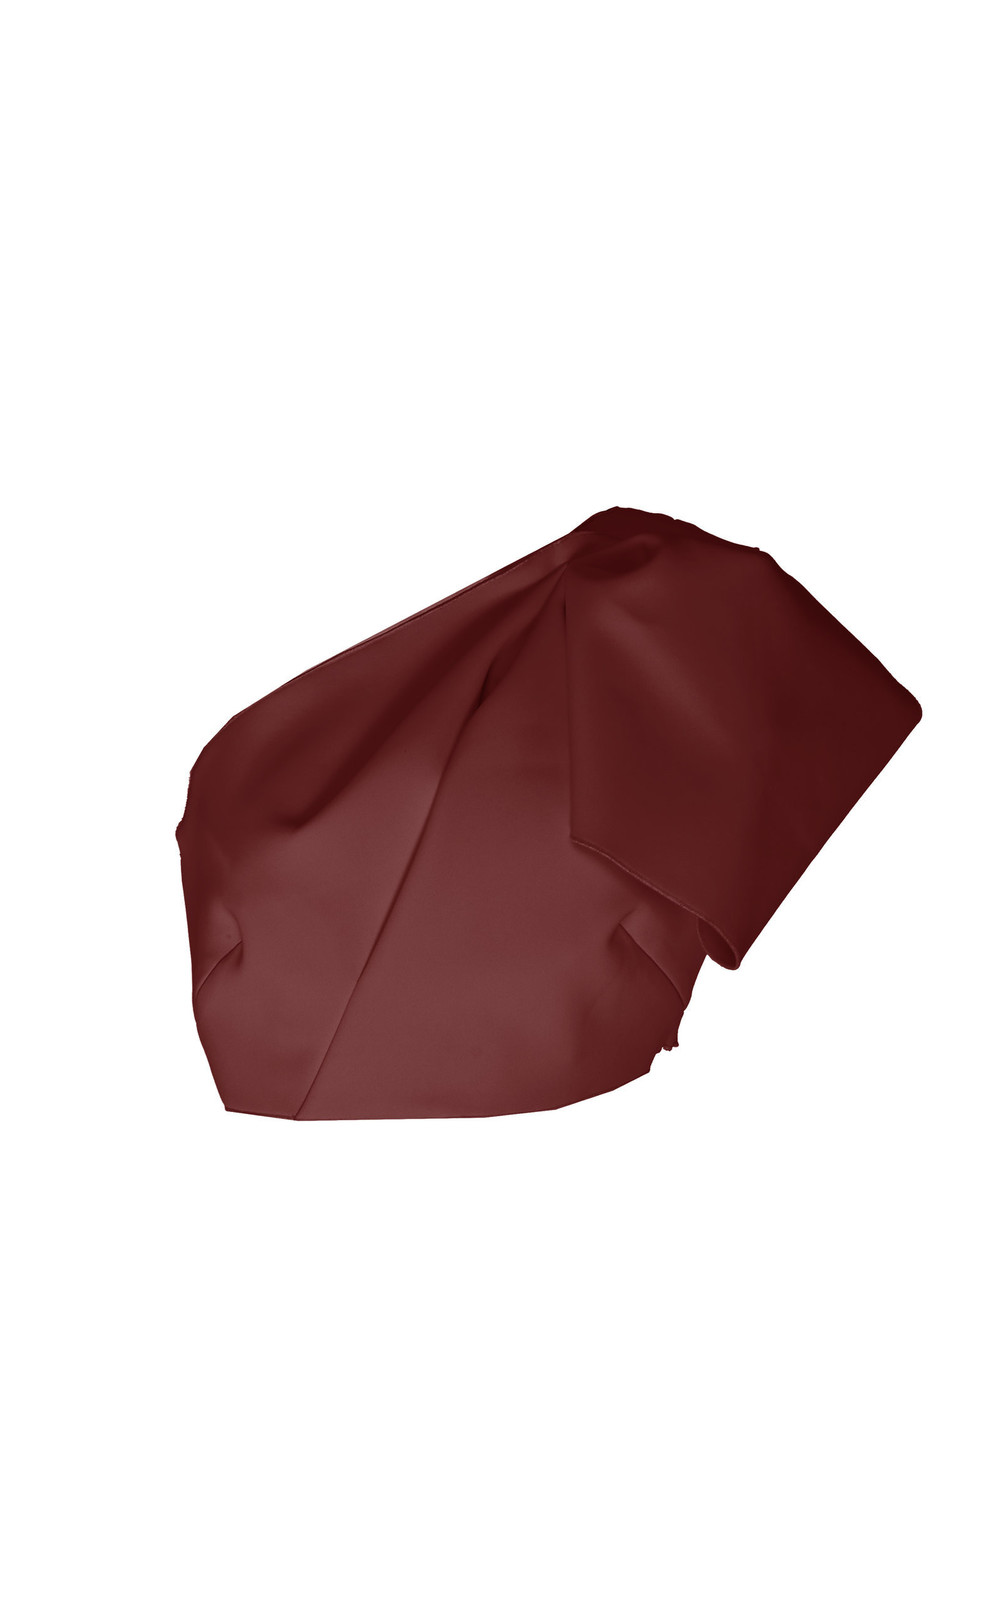 Acler Mancroft Cropped One Shoulder Detail Top in burgundy